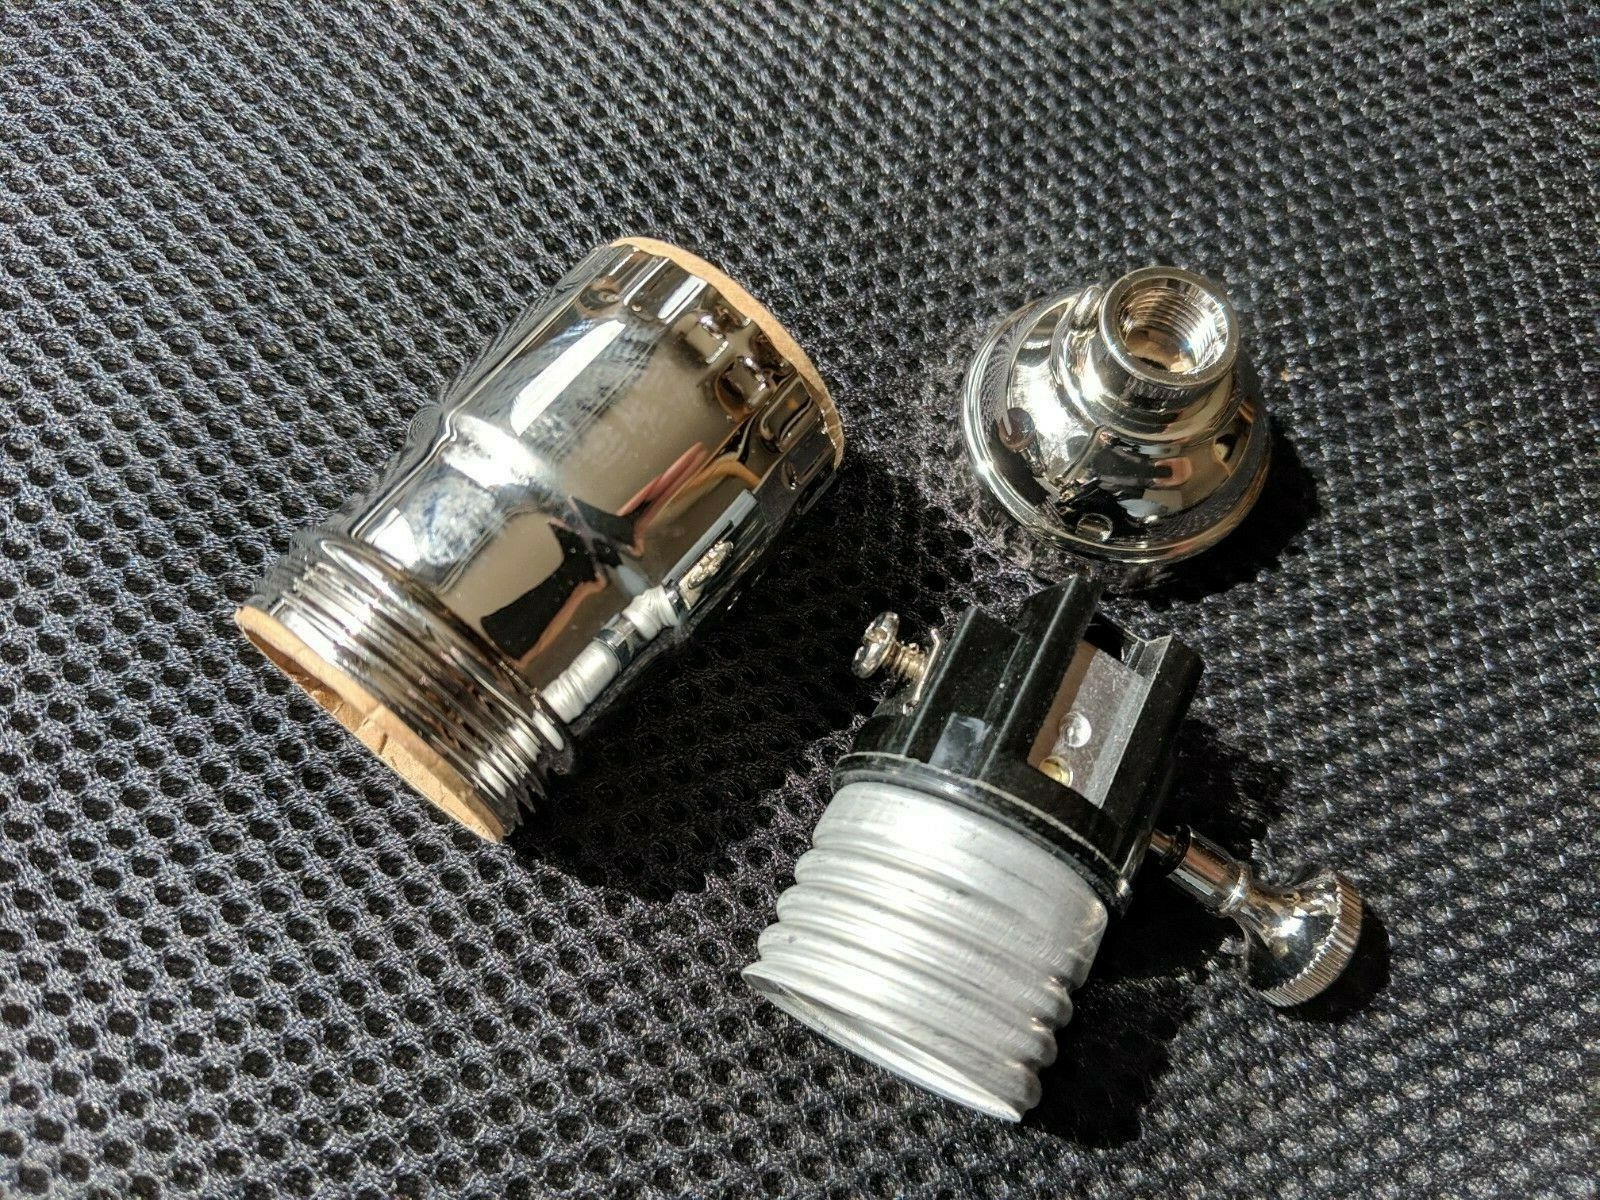 NEW REPLACEMENT LAMP SOCKET DELTA 882 RETIREMENT LIGHT NICKEL PLATED